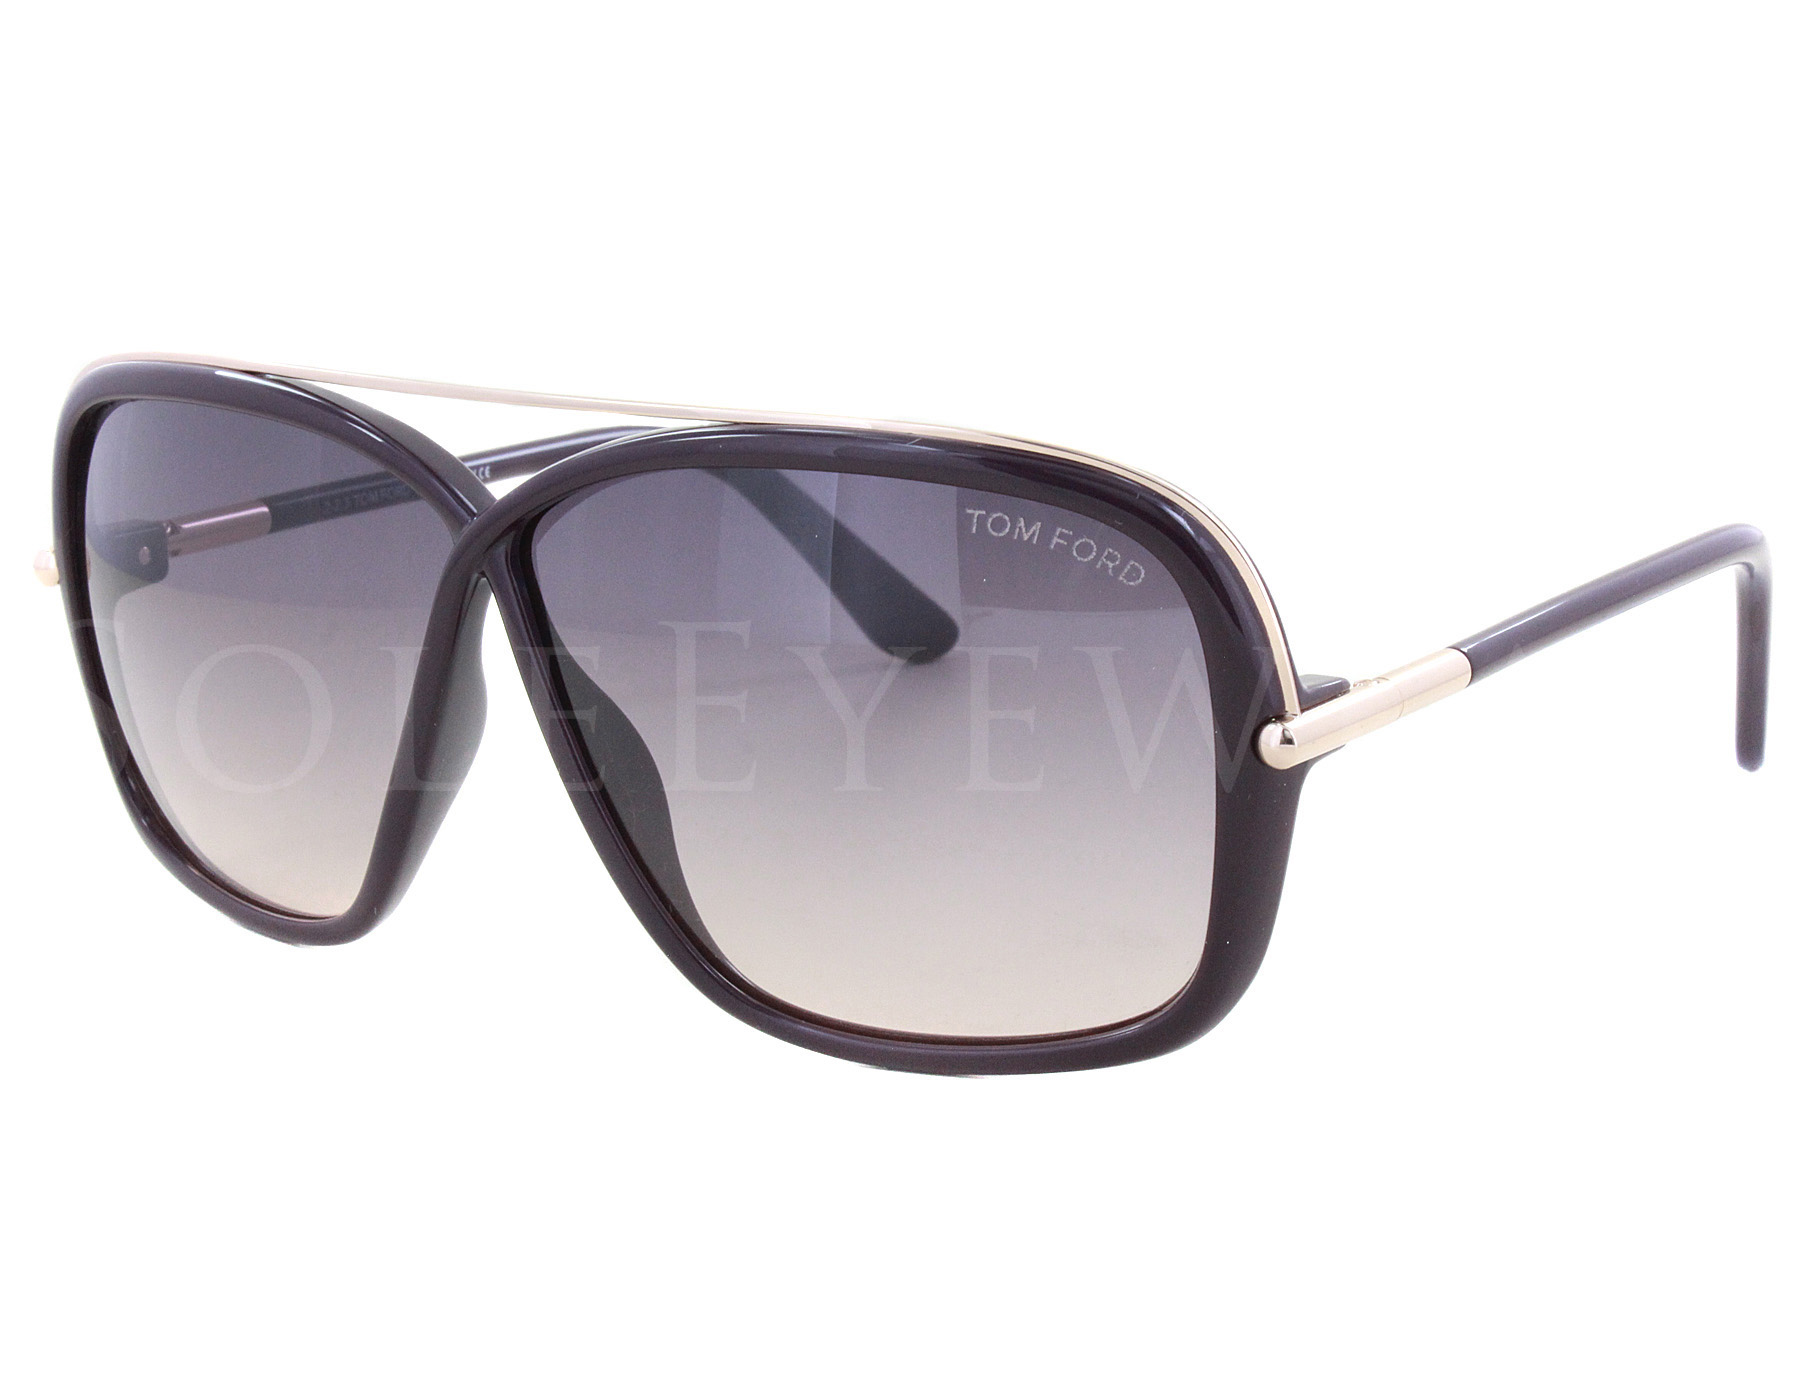 7bb729284c8 Details about NEW Tom Ford FT0455-81Z TF 455 Brenda Shiny Violet Gold   Violet  Sunglasses (NO